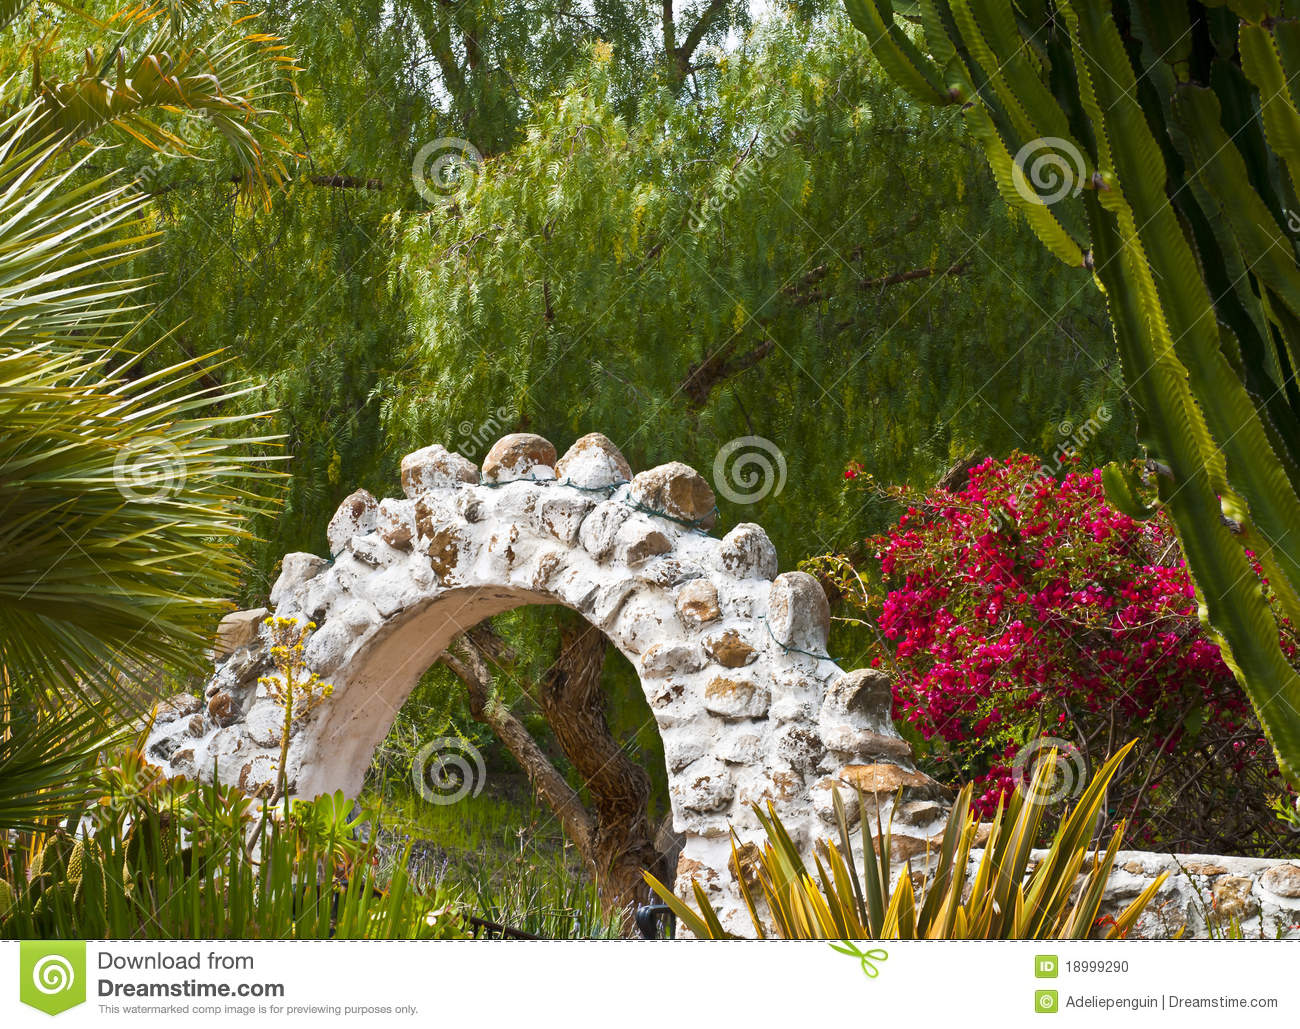 jardim pedras e flores : jardim pedras e flores:Pictures of Stone Arches with Flowers